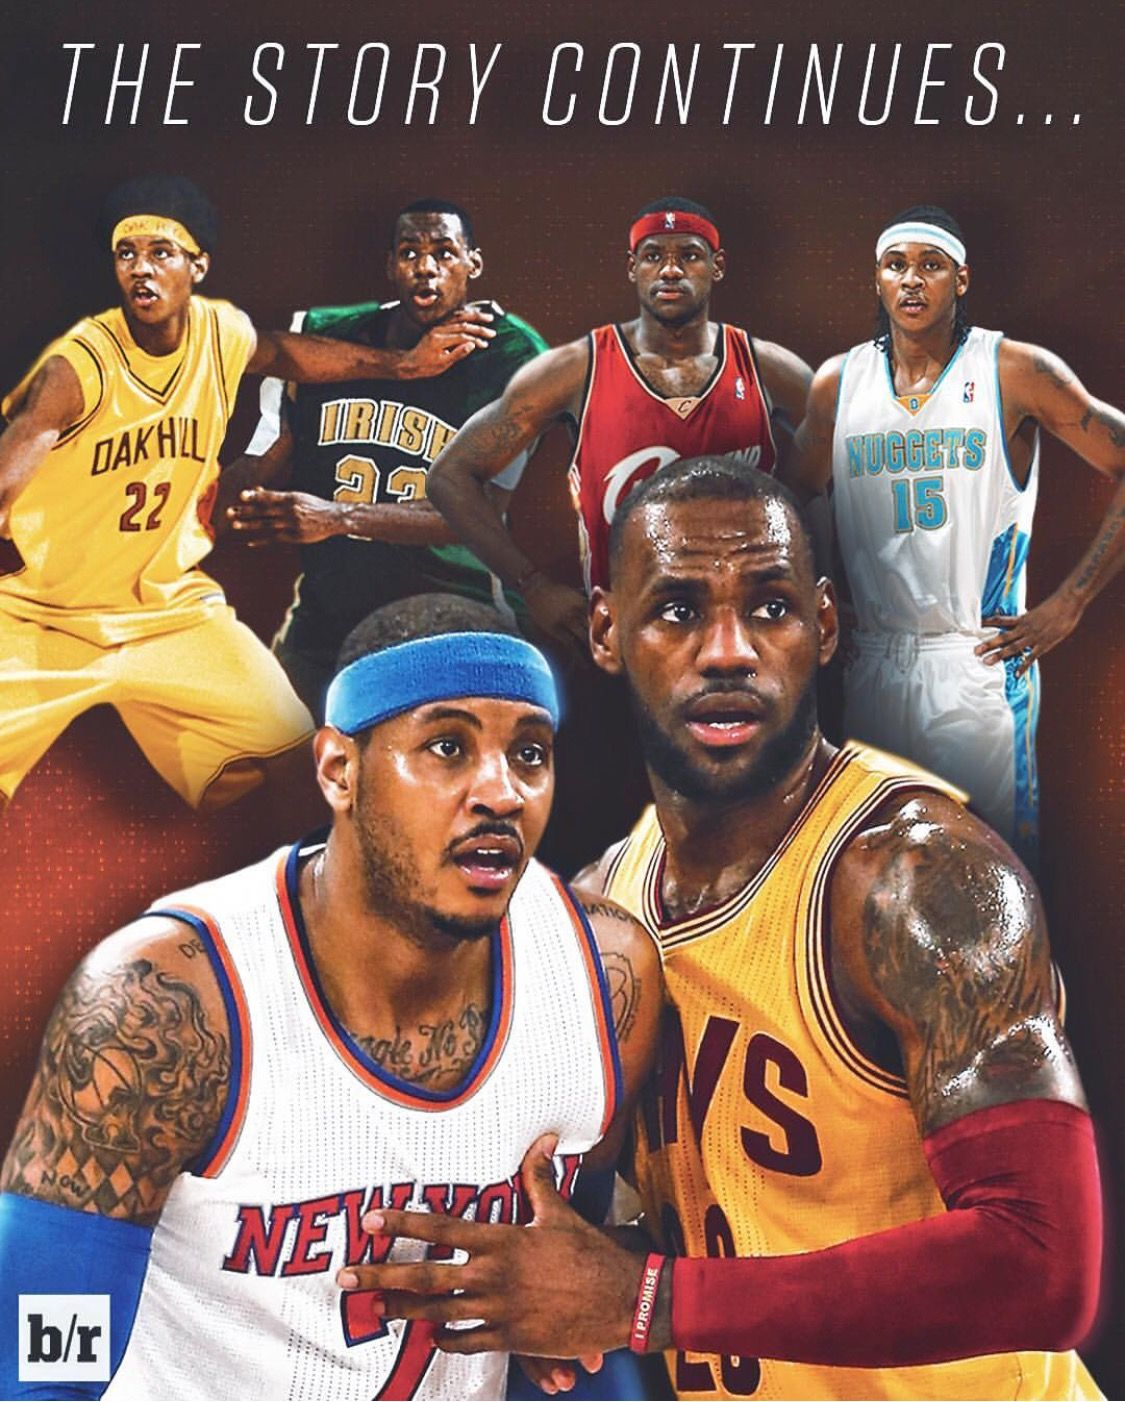 507386f79 Basketball T Shirt Design Editor. Over the years between two greats. Carmelo  Anthony and LeBron James